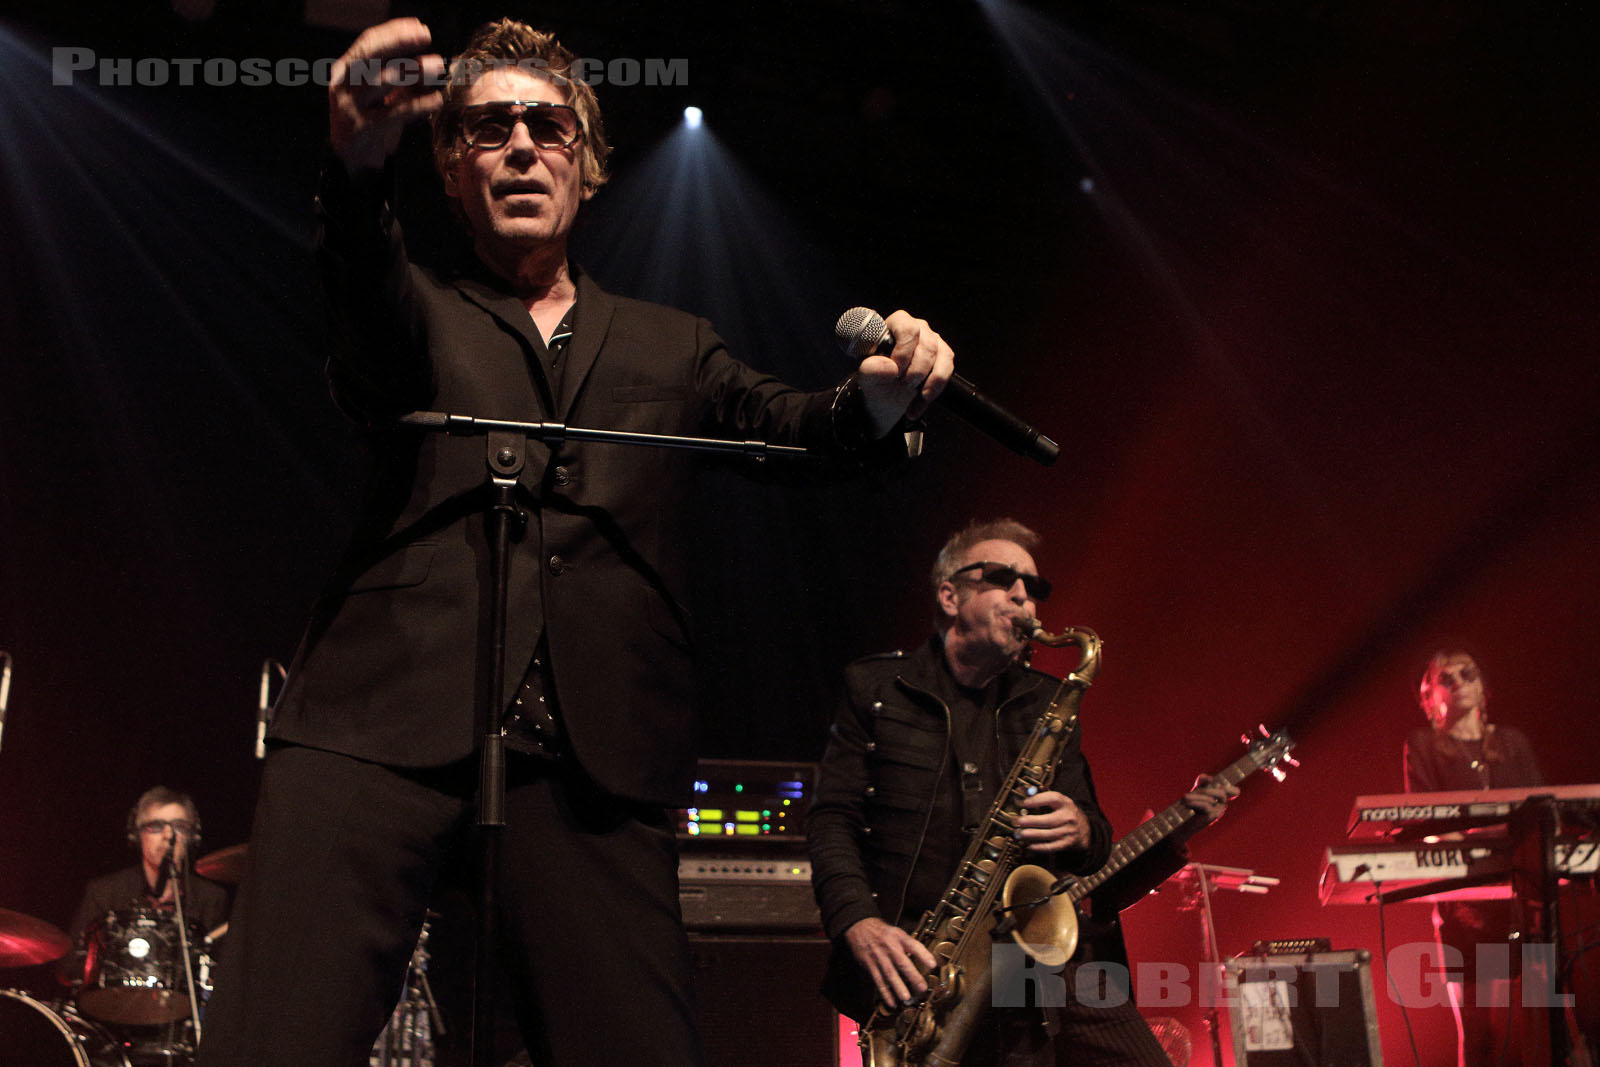 THE PSYCHEDELIC FURS - 2017-08-29 - PARIS - Elysee Montmartre